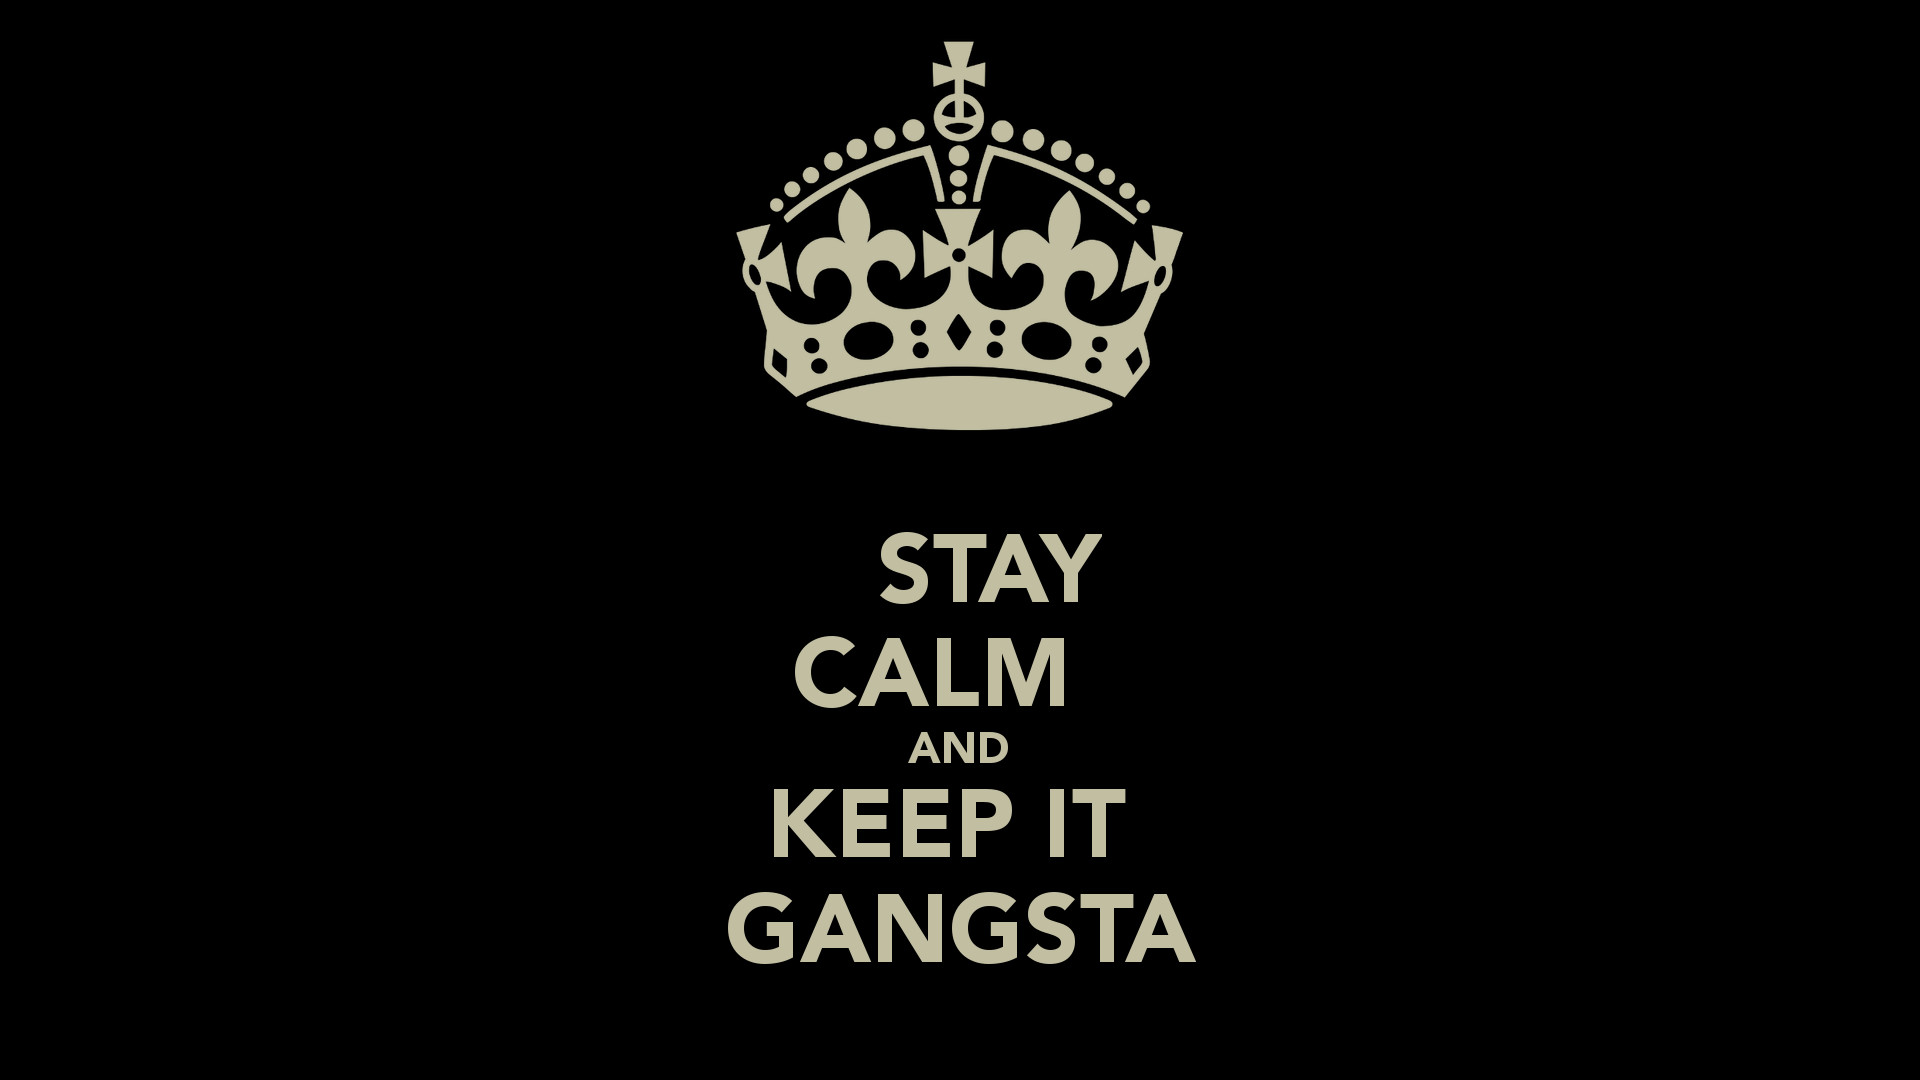 1920x1080 Gangster HD Wallpapers in Best  Resolutions | Jeri Weinstock  NMgnCP PC Gallery